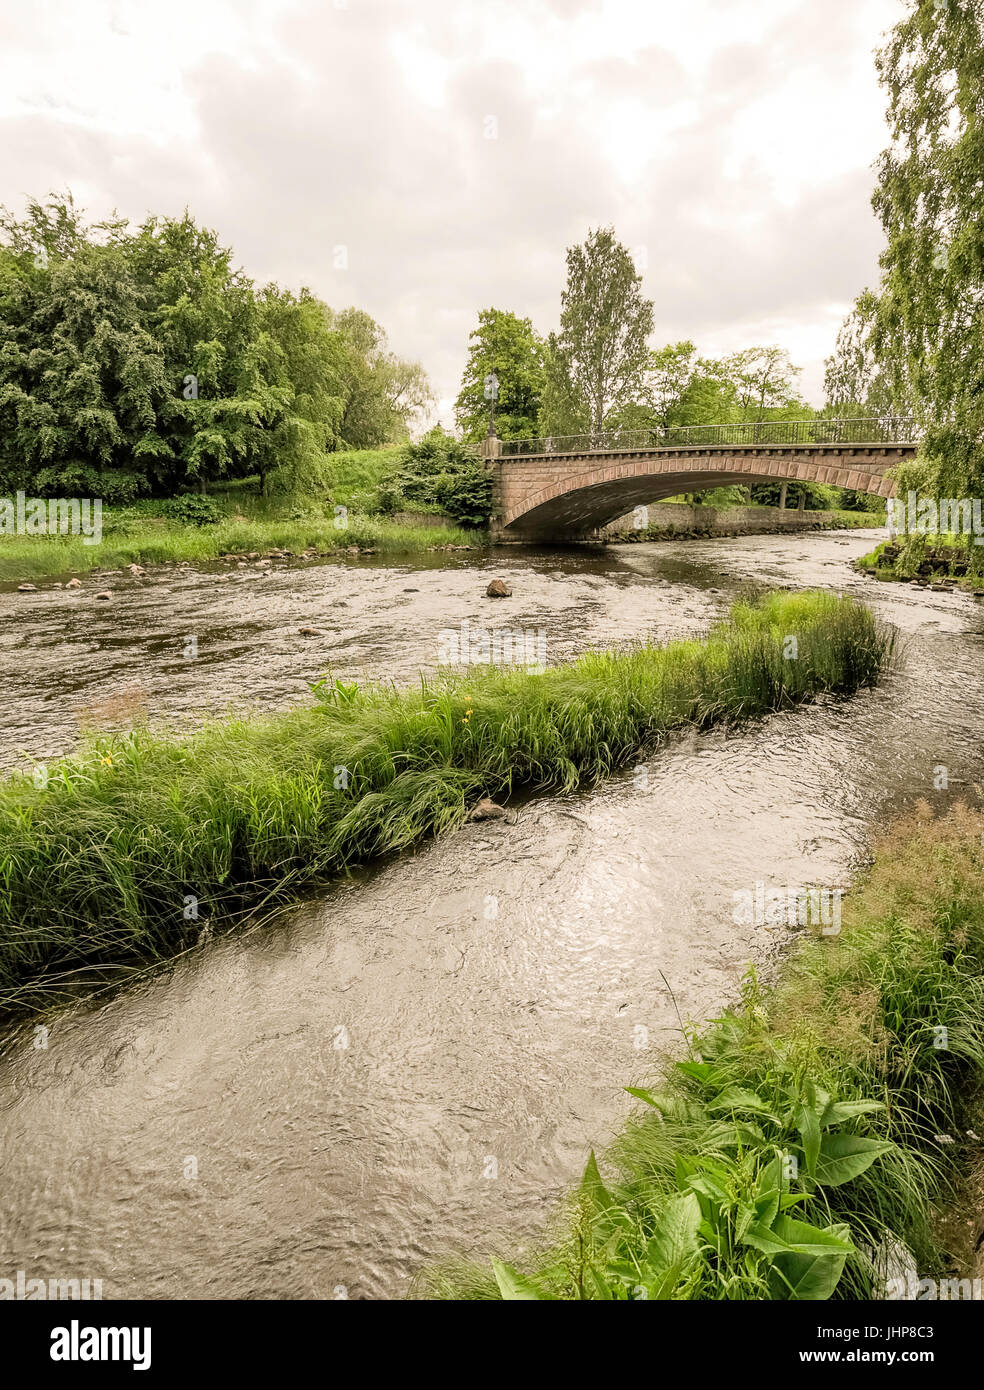 Stone Bridge over Gavle River with a cloudy sky. - Stock Image